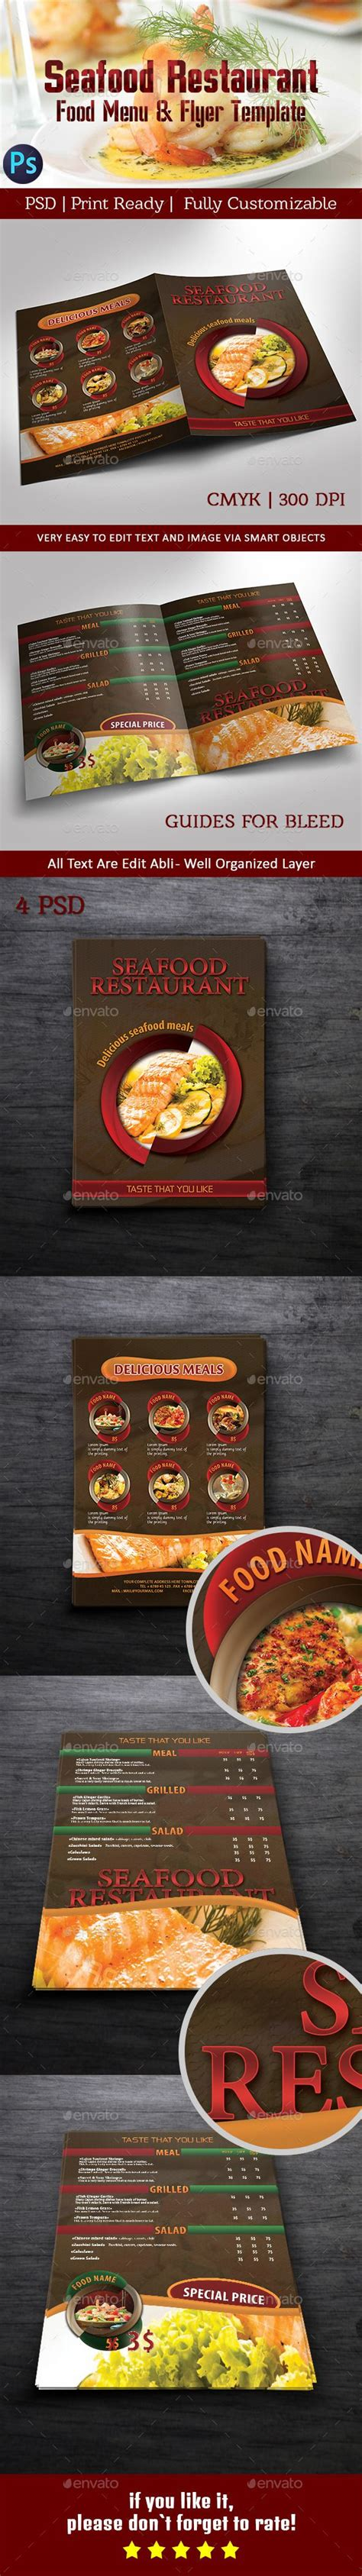 bi fold flyer template seafood restaurant food menu bi fold flyer template